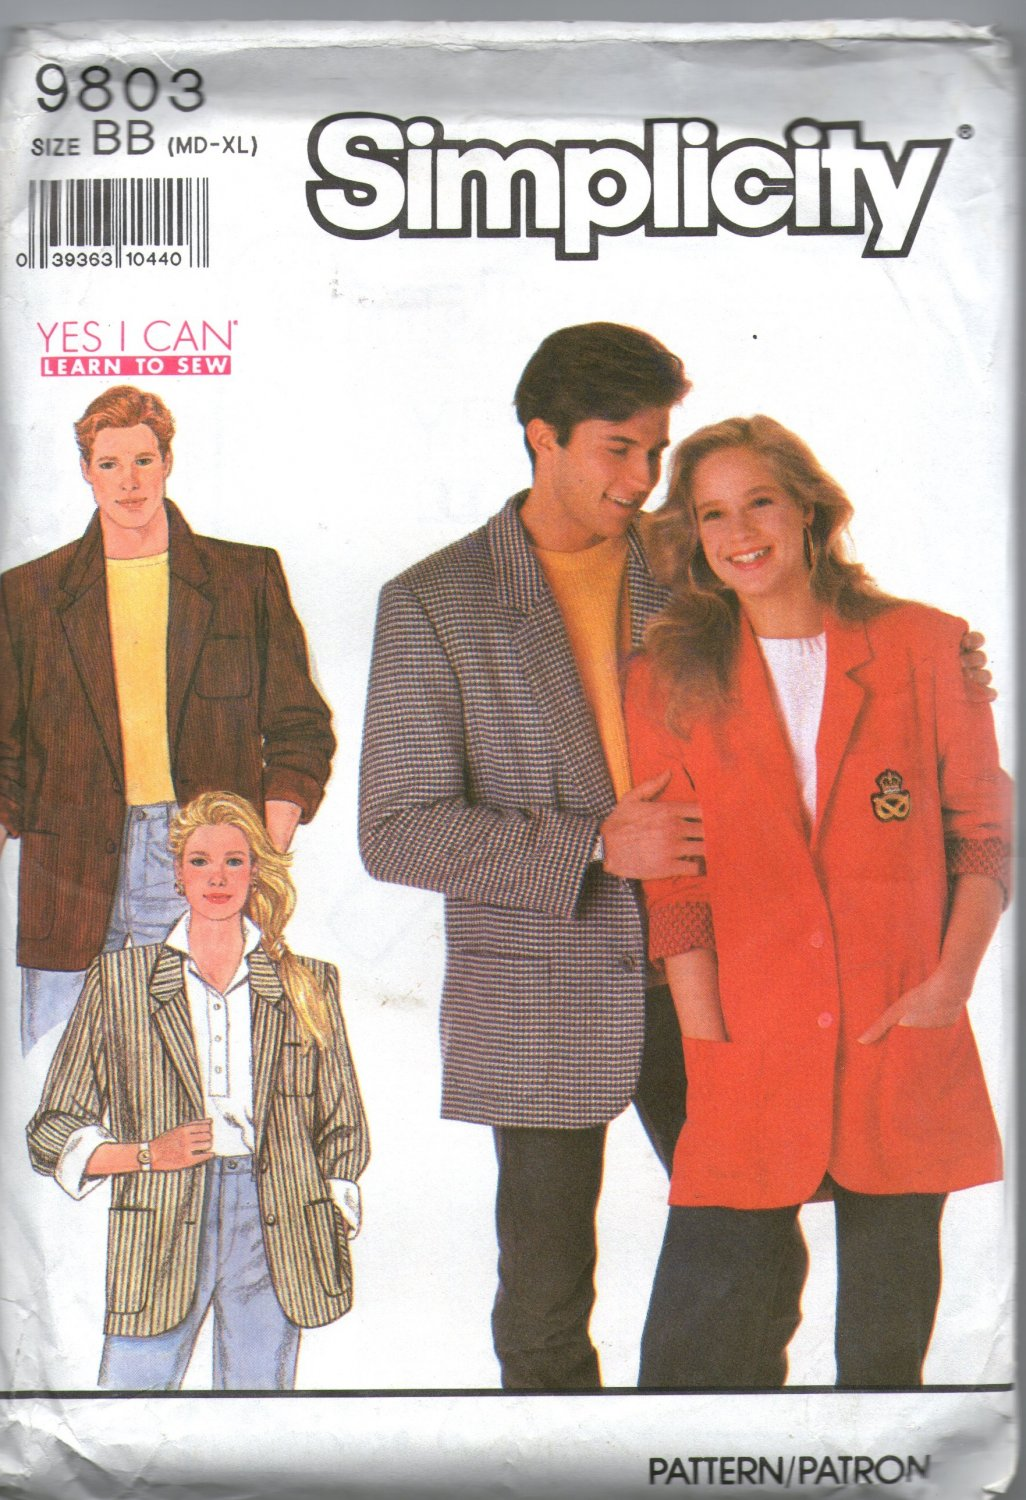 Simplicity 9803 Unisex Loose Fitting Lined Jackert Sewing Pattern Chest / Bust 38 - 48 Uncut